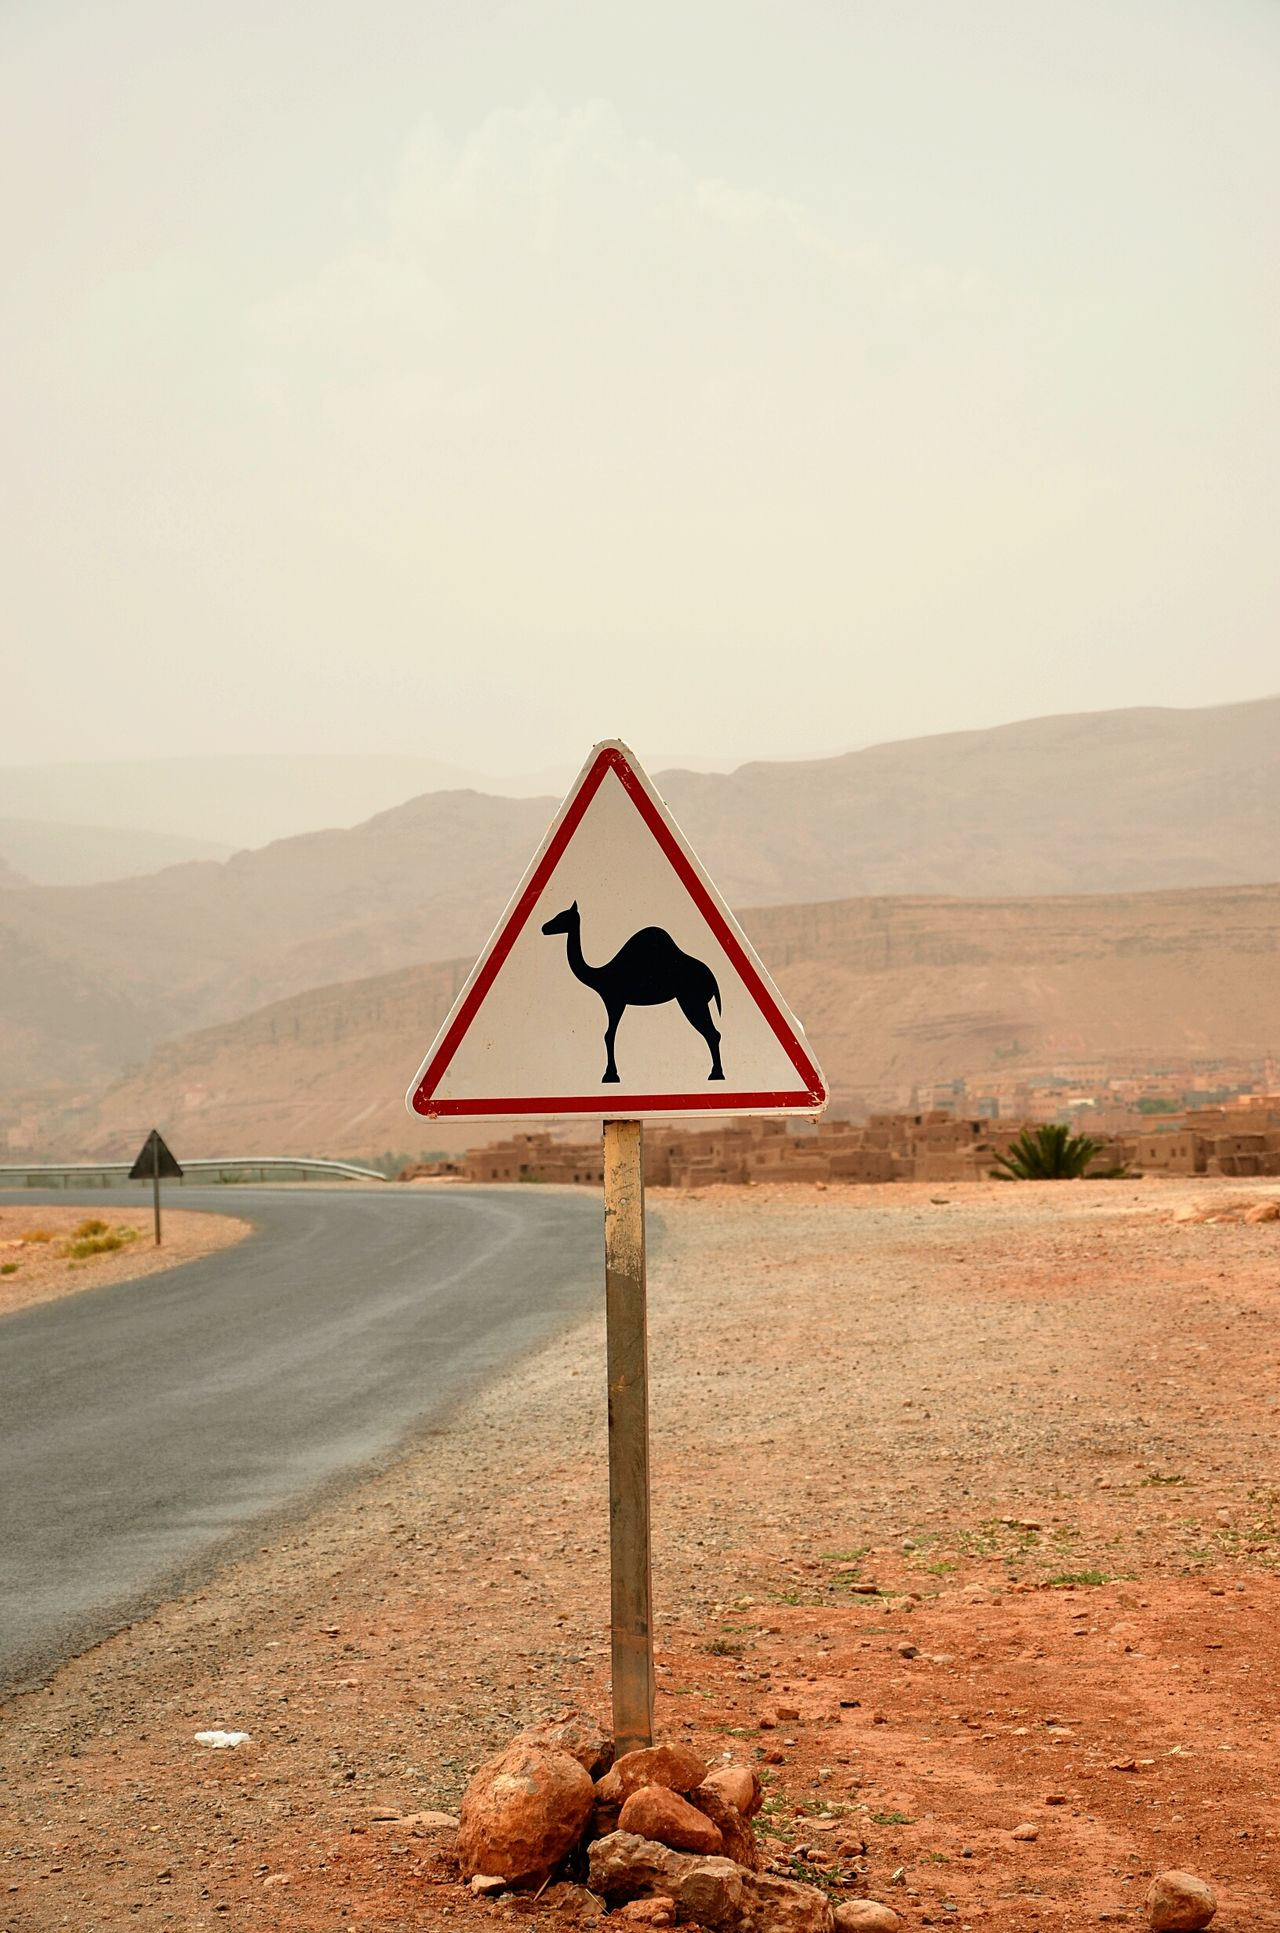 Beautiful stock photos of camel, Animal Representation, Black Color, Camel, Camel Crossing Sign